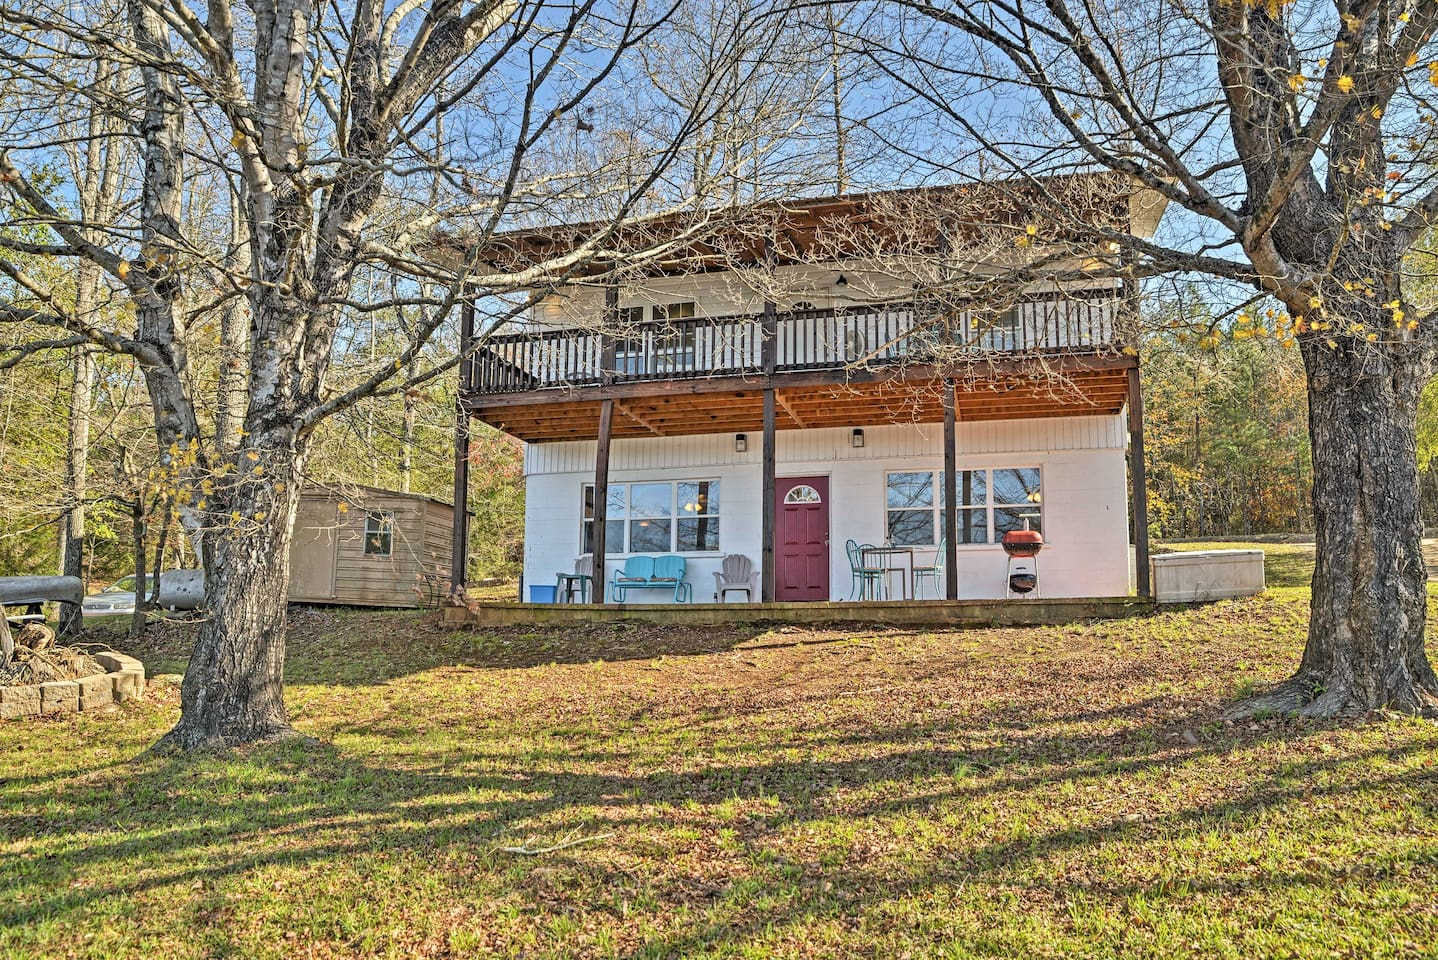 Restore your sense of peace while staying at this Delta vacation rental cottage!